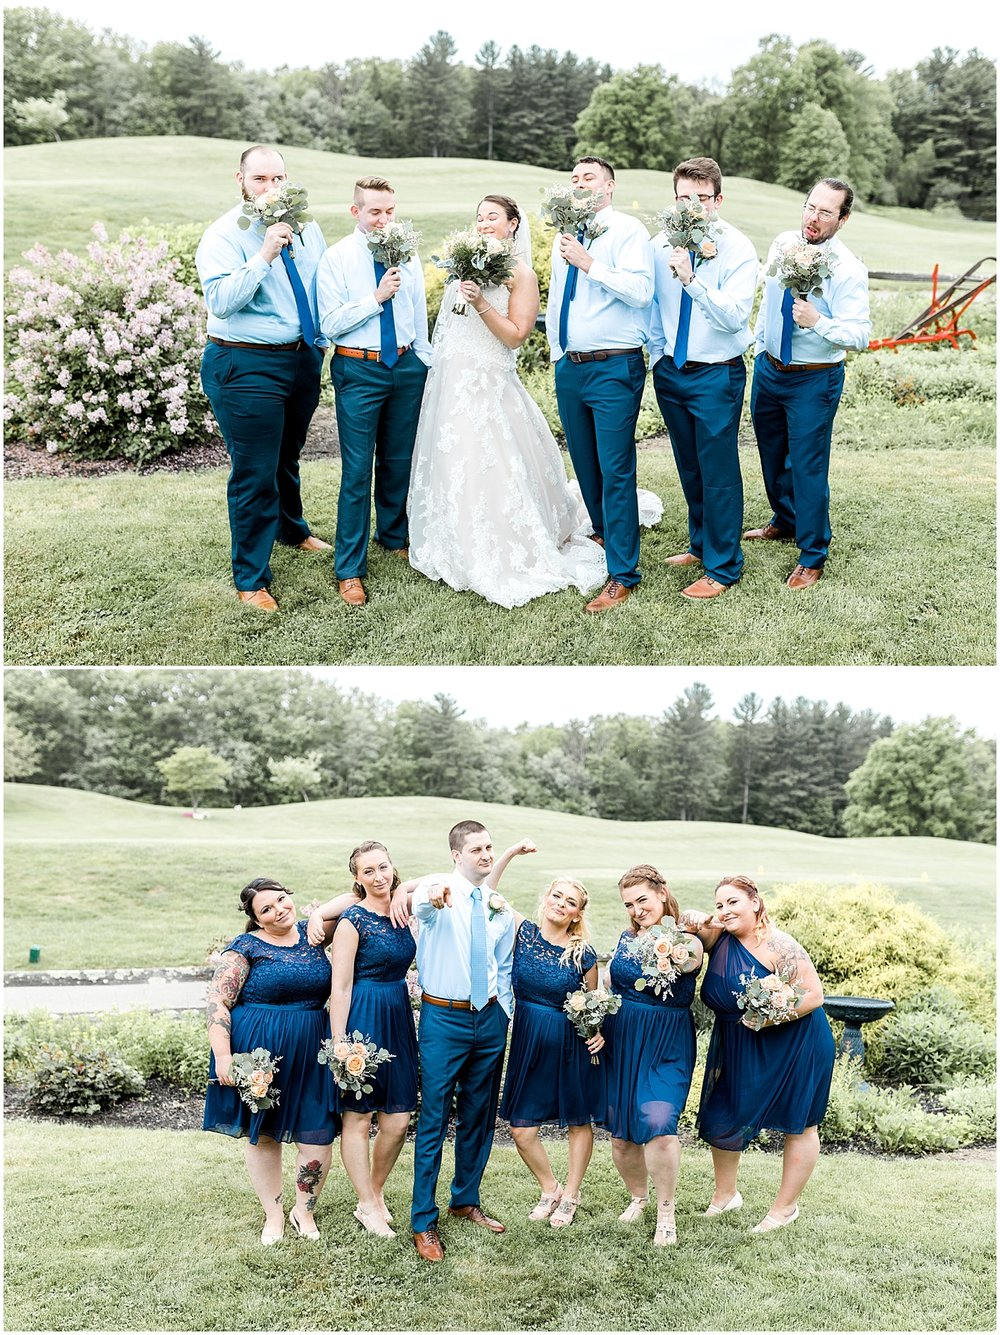 Fun silly wedding party photos by Alyssa Parker Photography